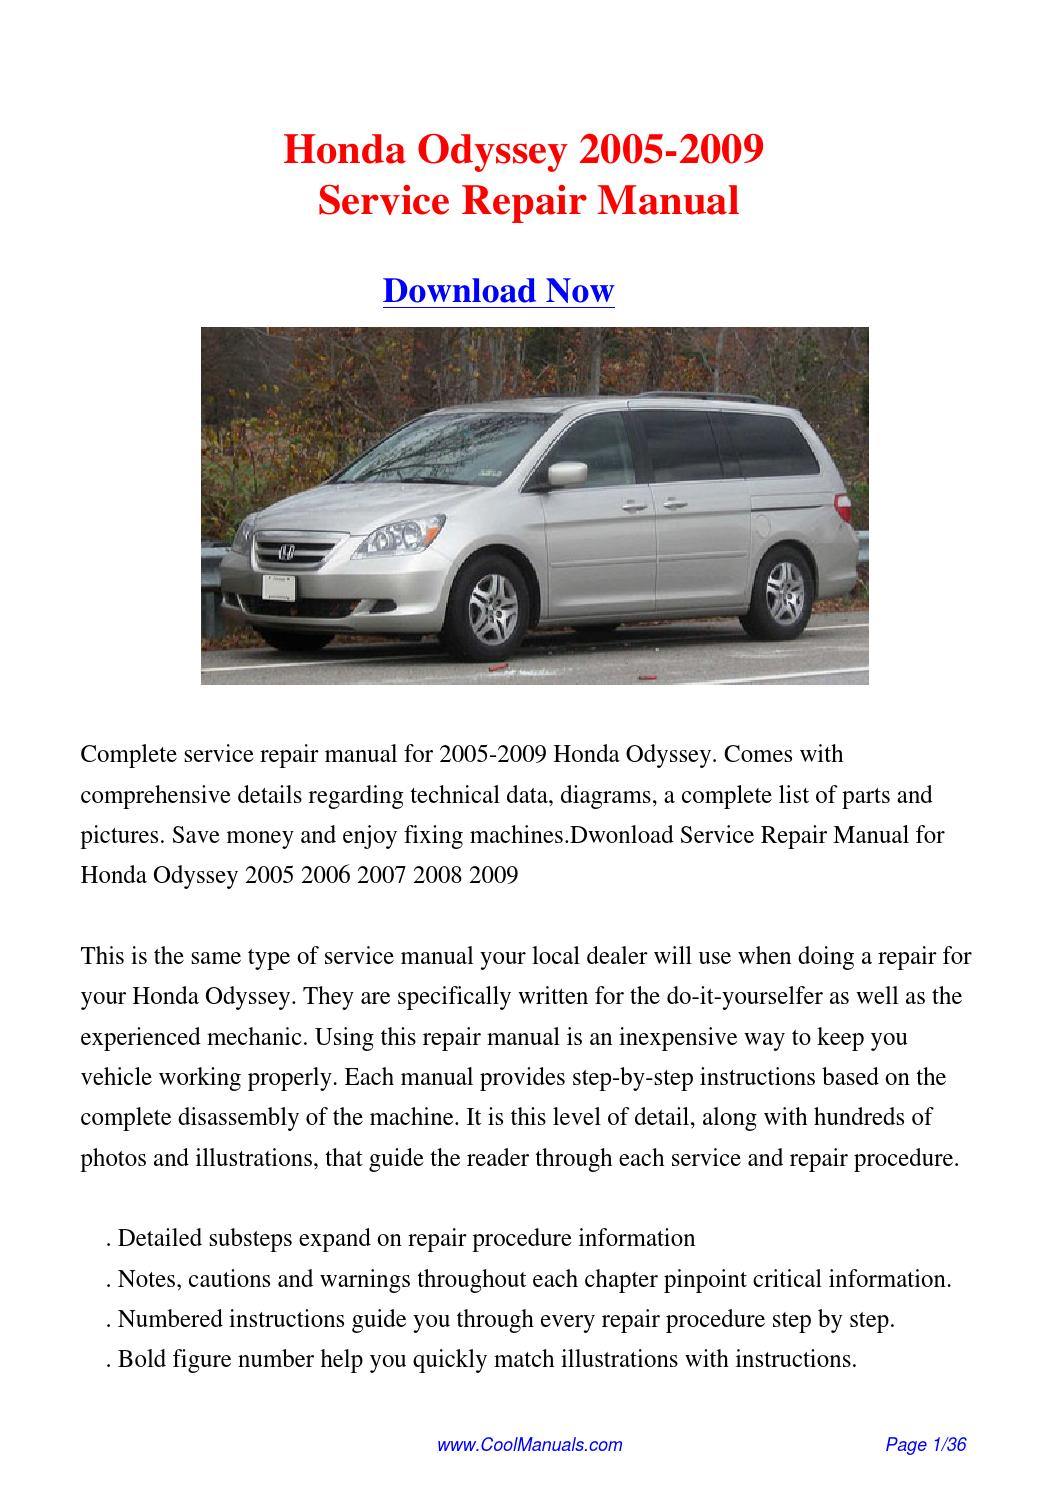 2009 HONDA ODYSSEY SERVICE MANUAL Download PDF